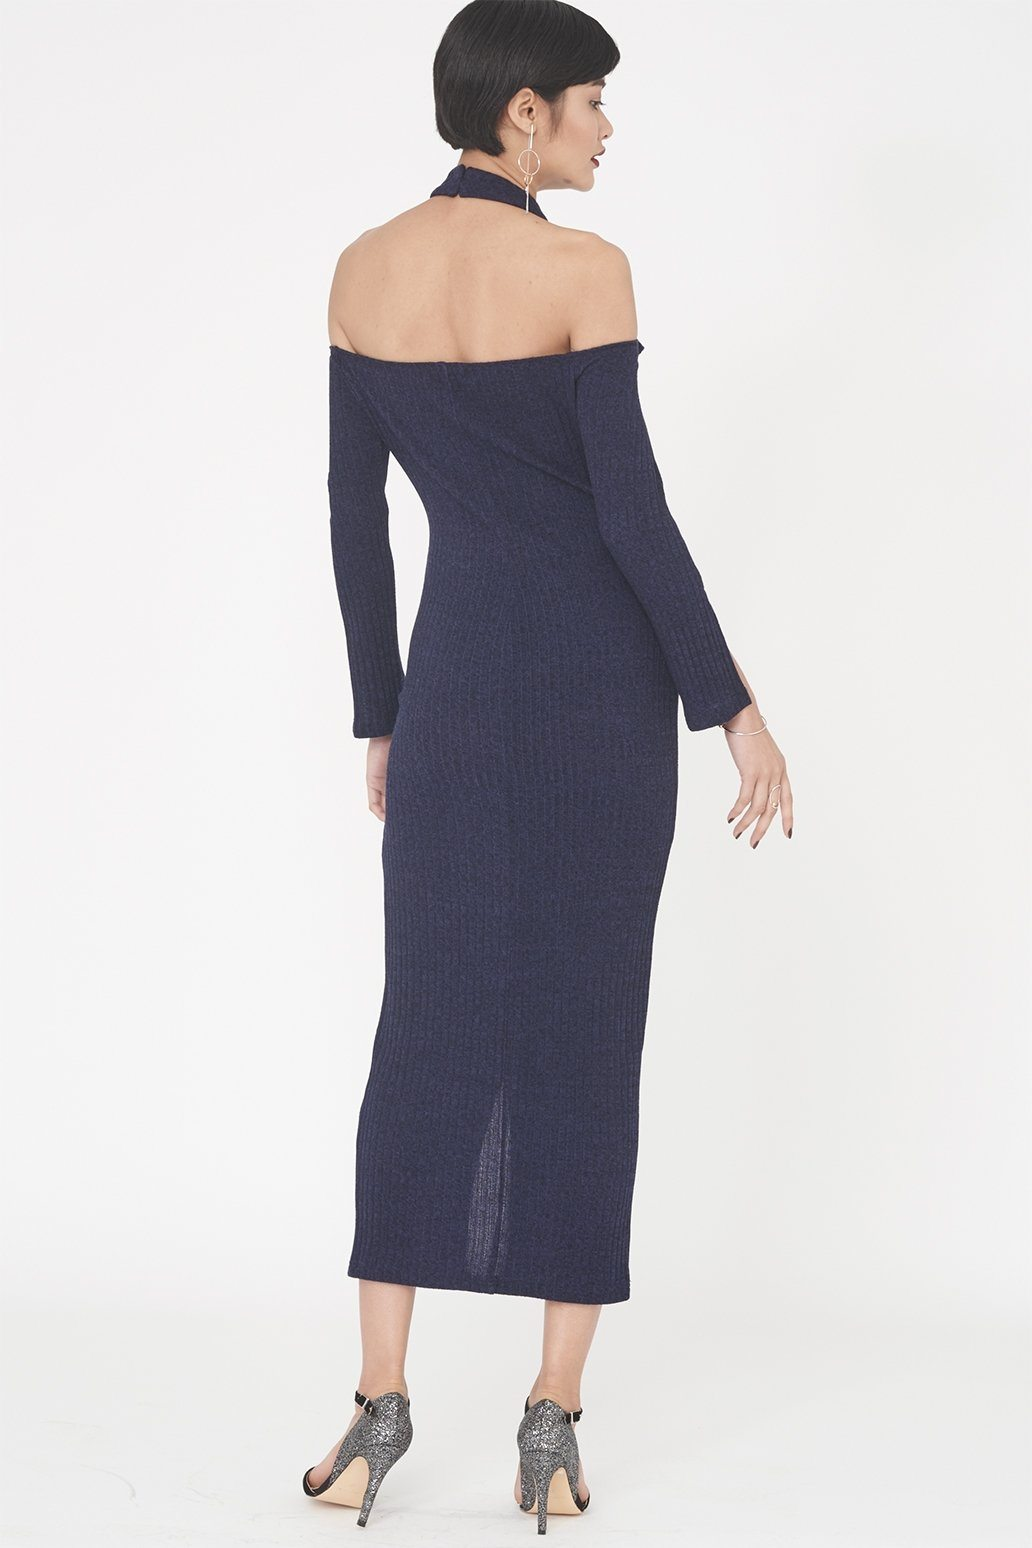 Cold Shoulder Rib Knit Dress in Navy